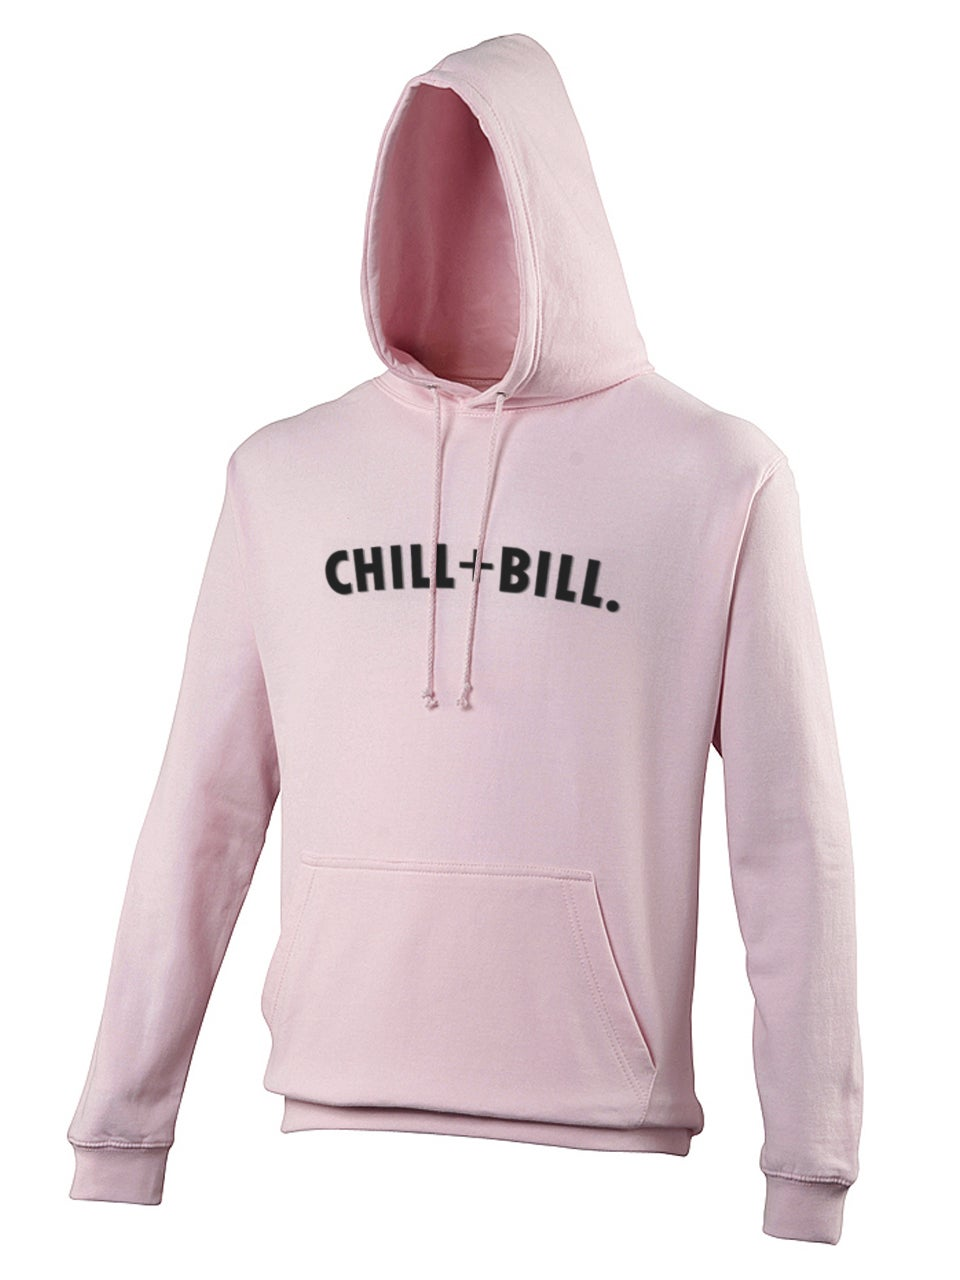 Image of Chill+Bill Hoodie in Soft Pink